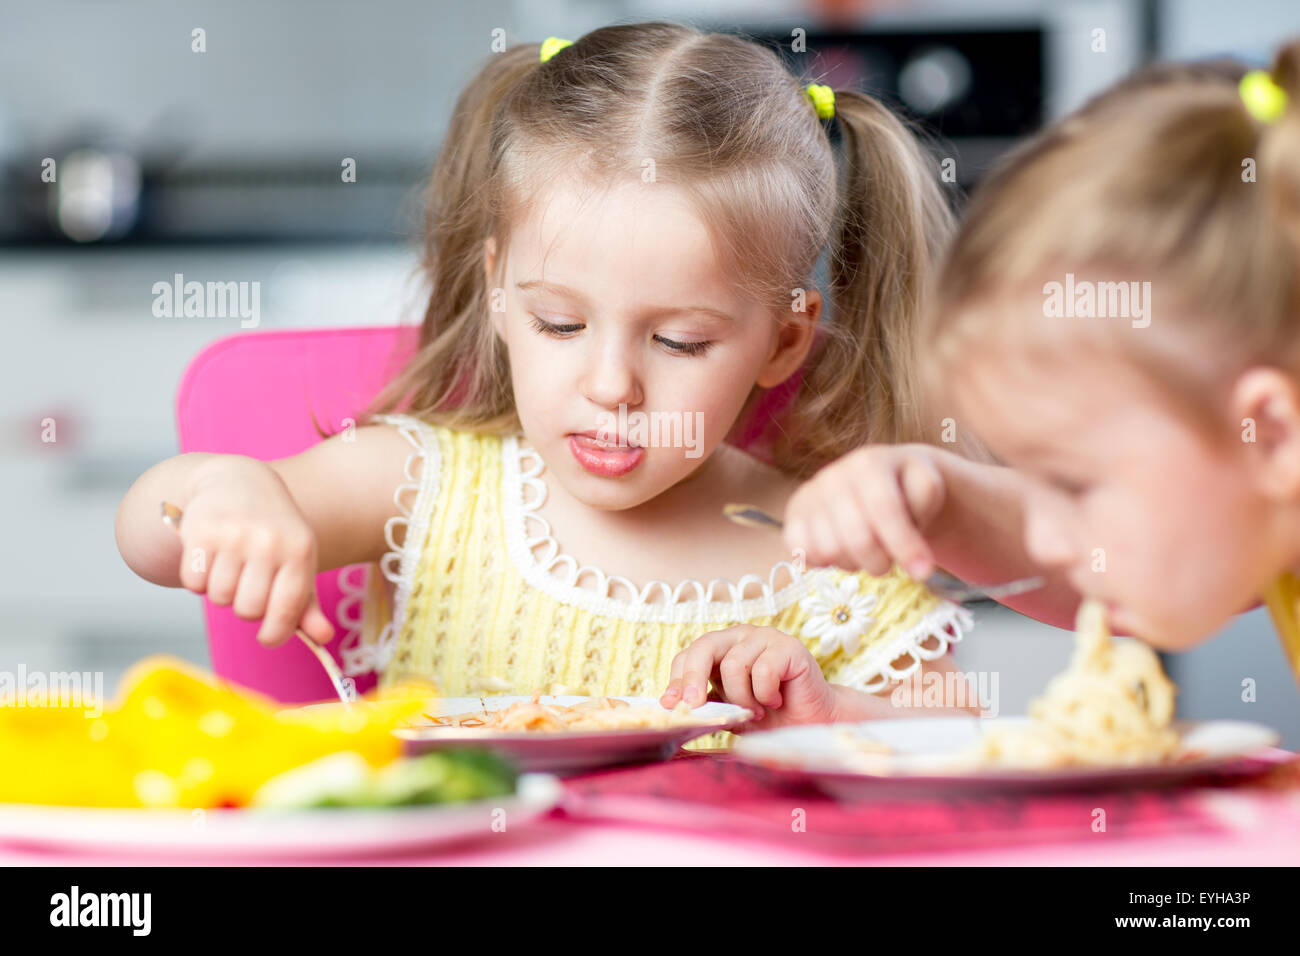 Kids eating spaghetti with vegetables in nursery - Stock Image